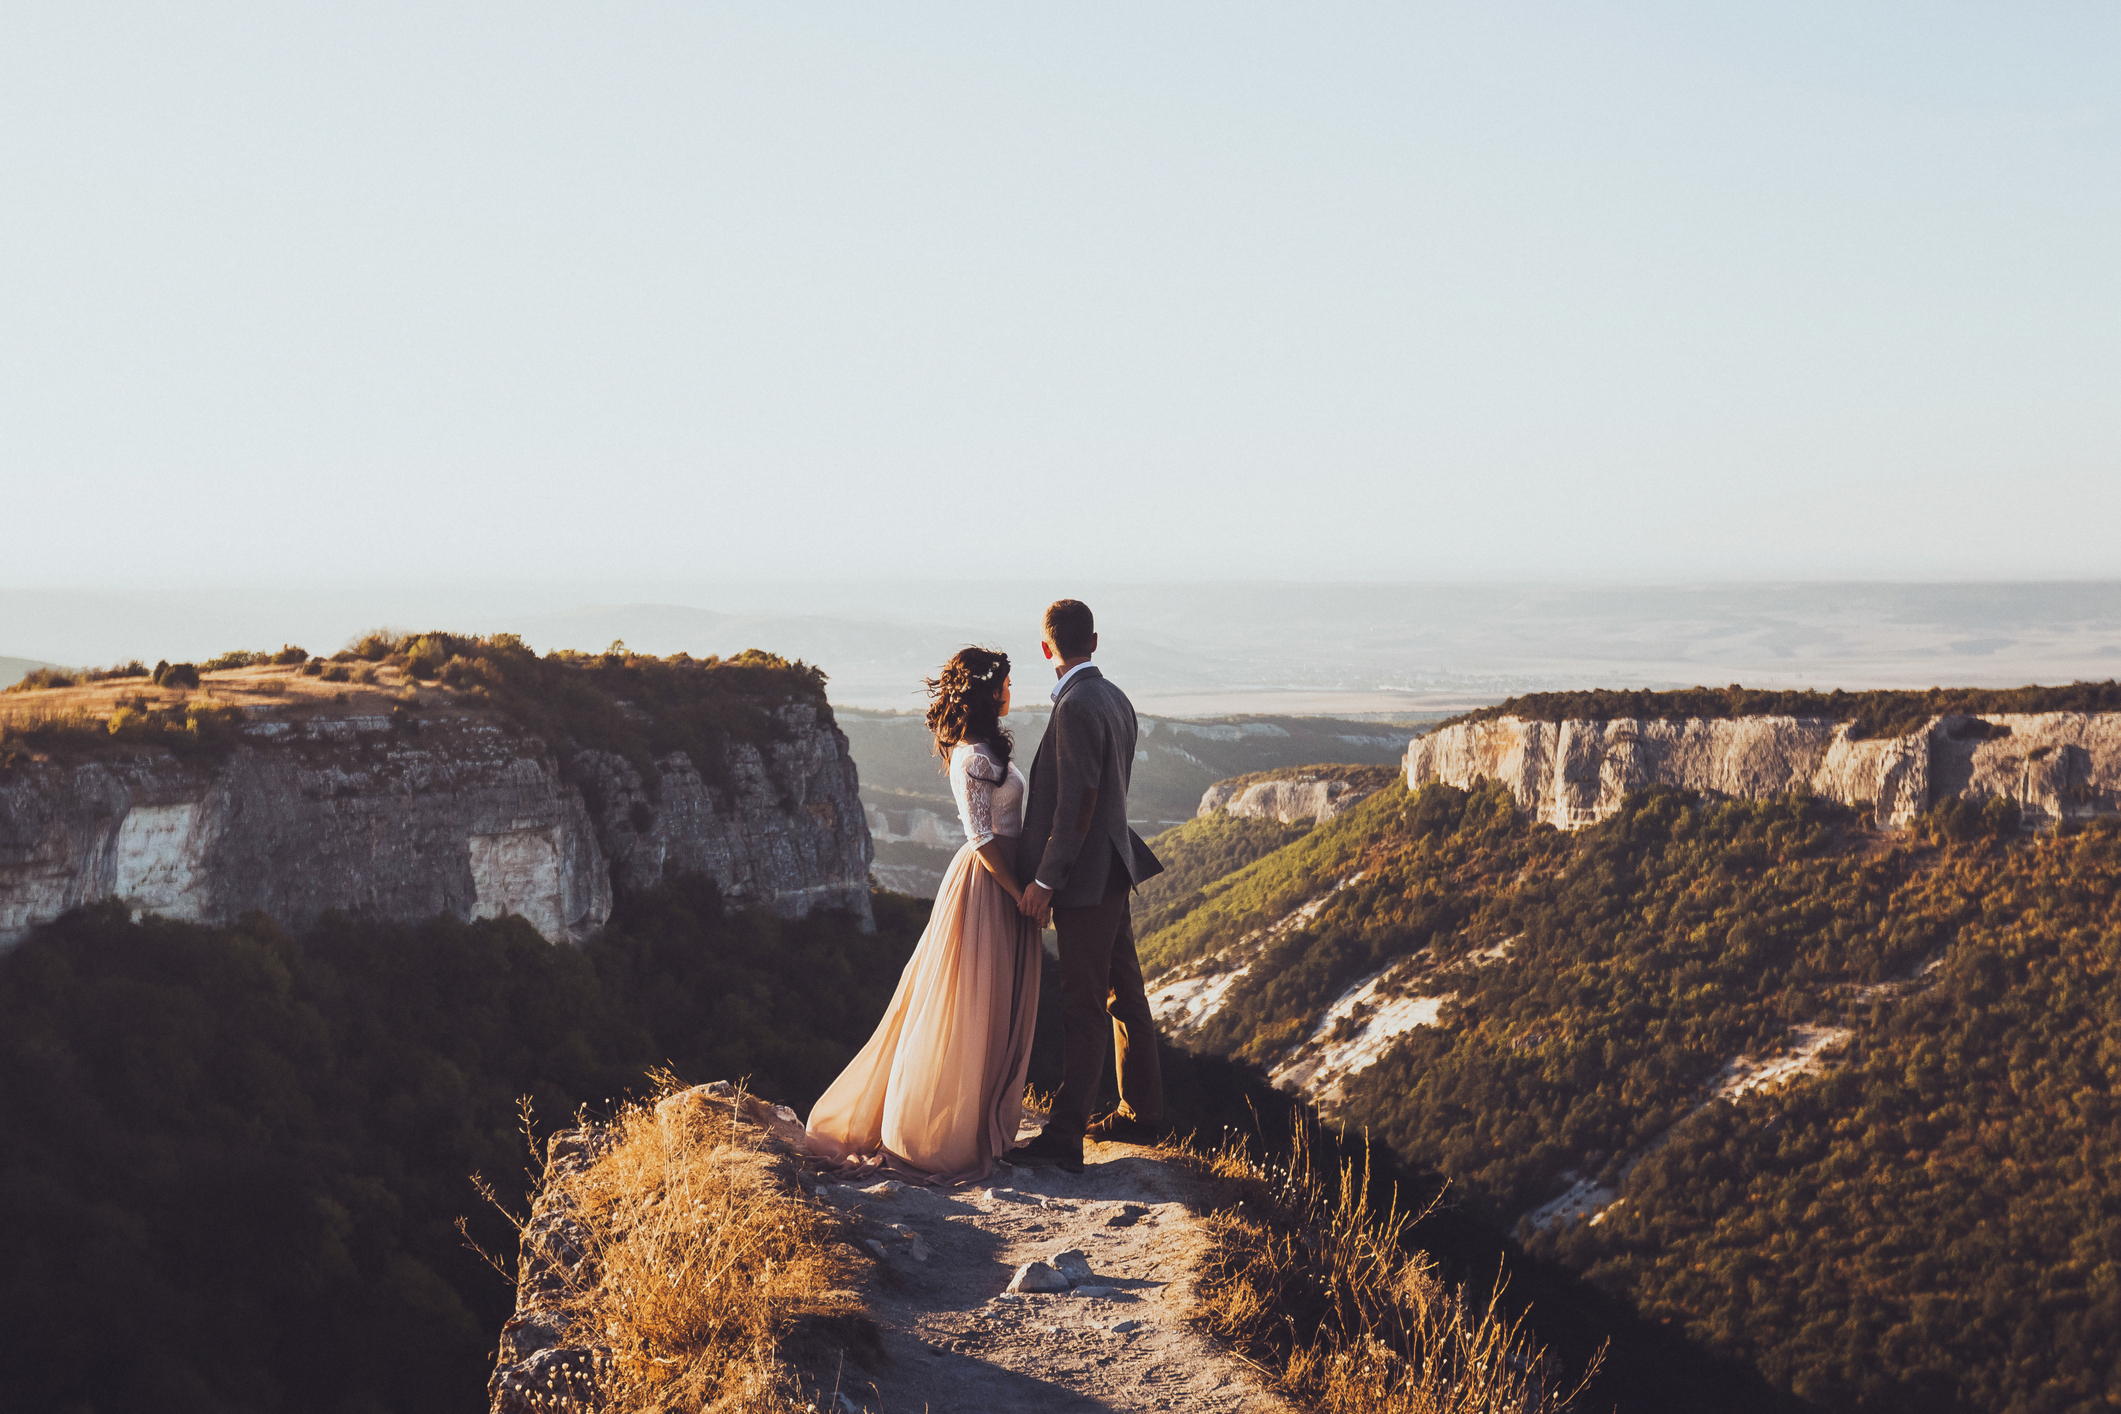 Bride and groom walking in mountains at sunset. Around the stunning scenery with views of the mountains and canyon Mangup